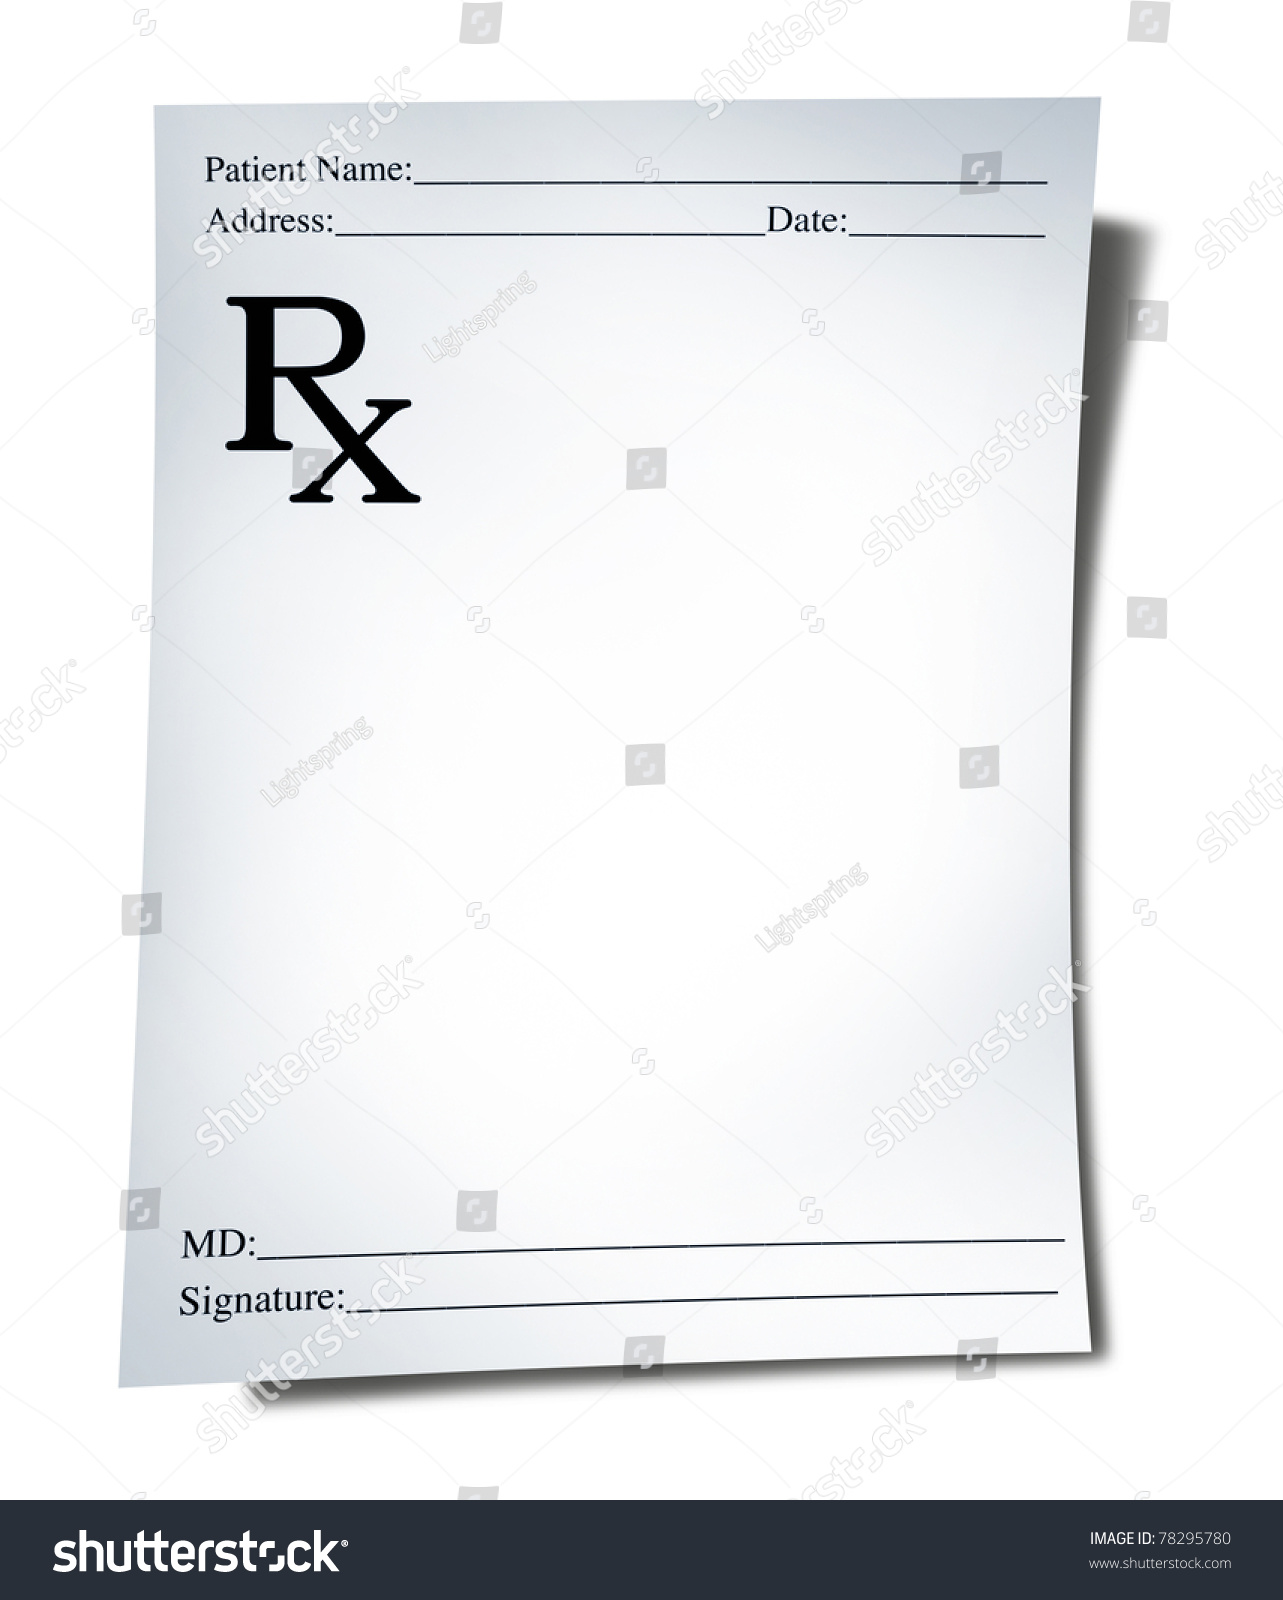 S note background image - Prescription Note Isolated On A White Background Representing A Doctor S Medicine Remedy Given To A Pharmacist